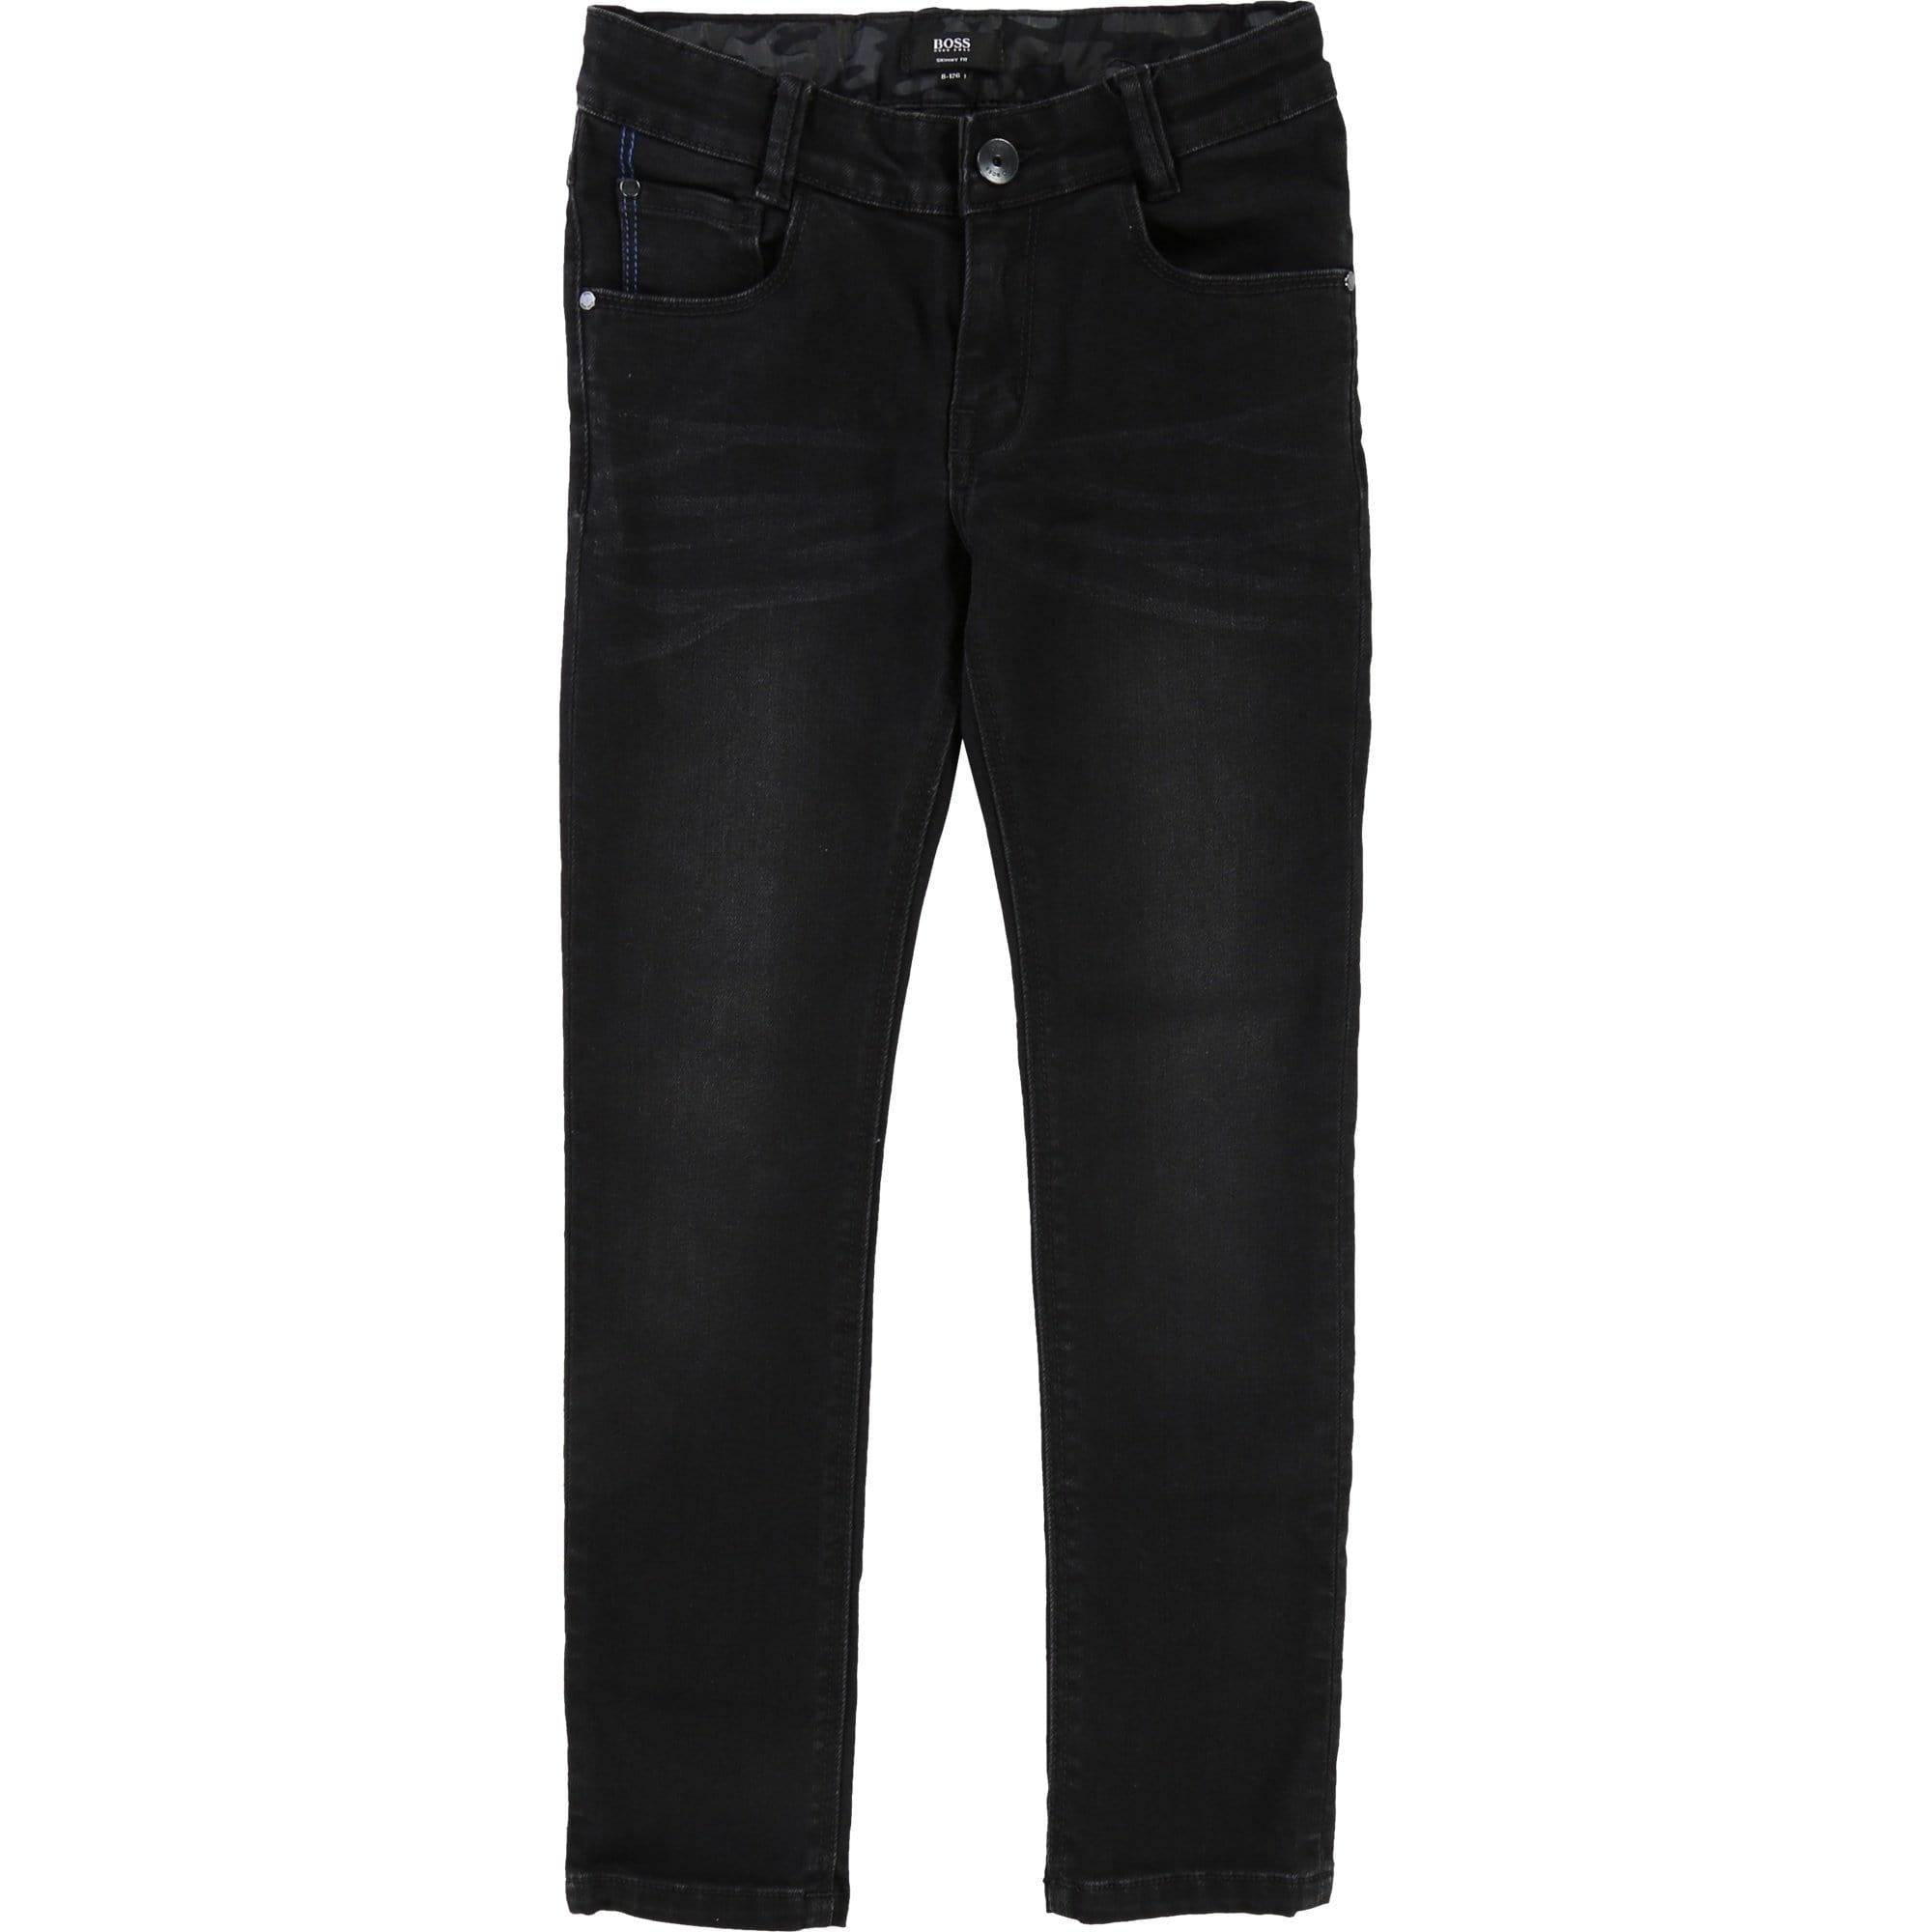 Hugo Boss Denim Jeans Black (4715348099203)